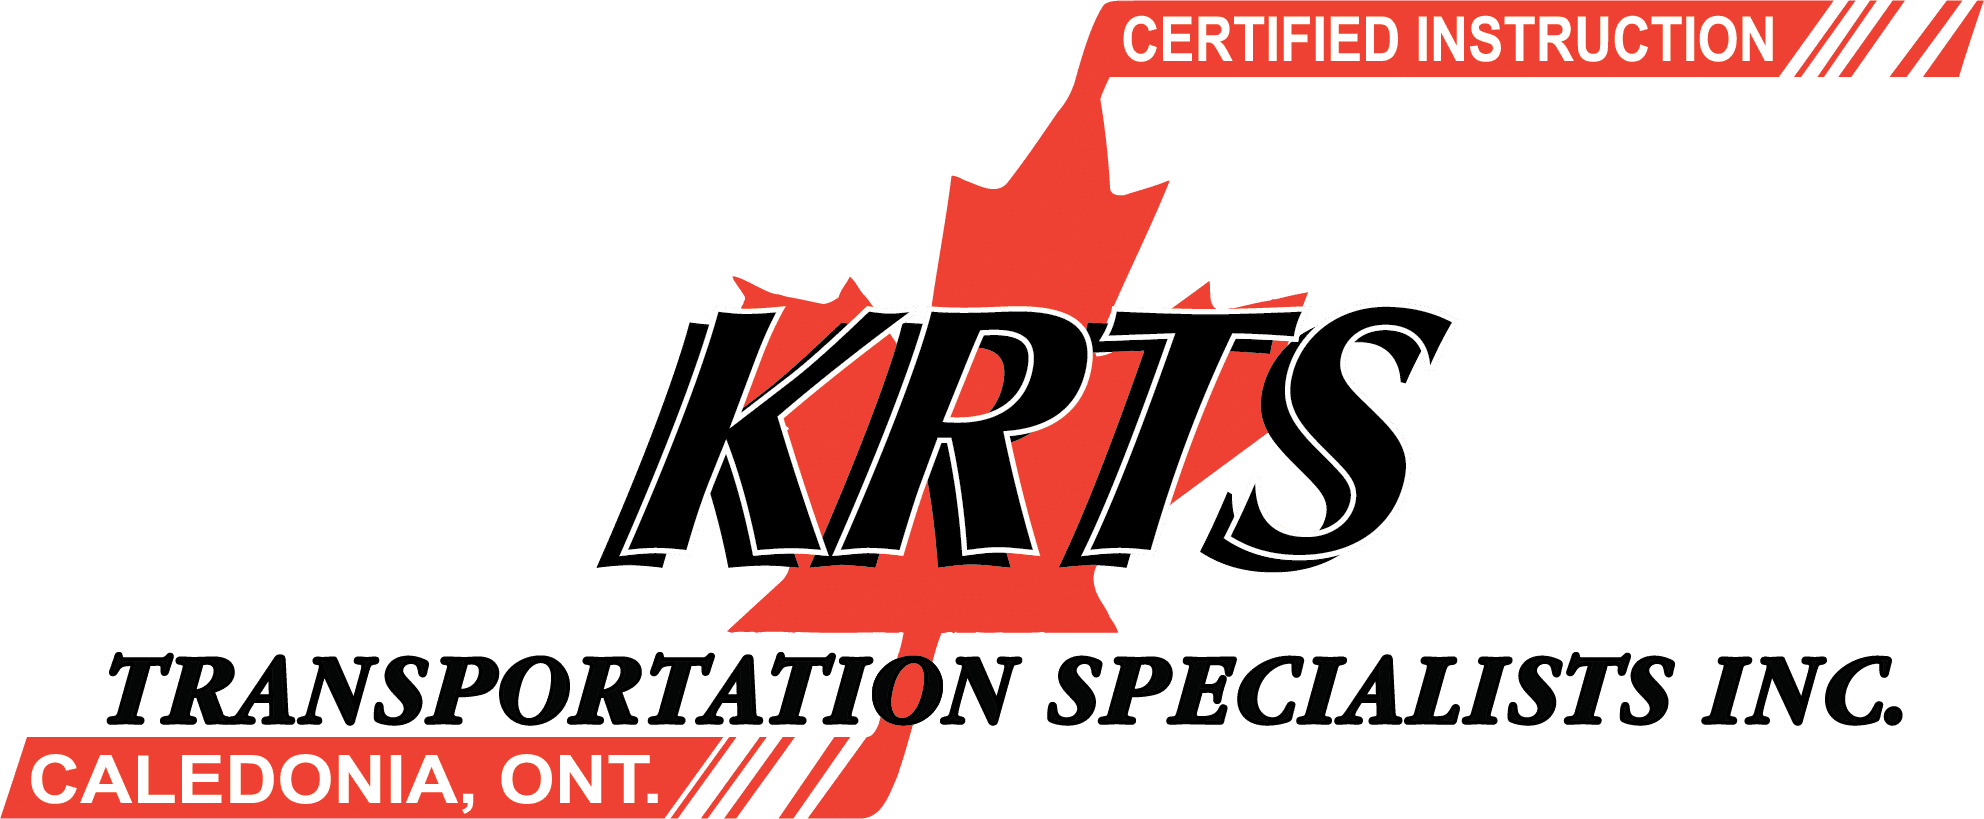 KRTS Transportation Specialists Inc.